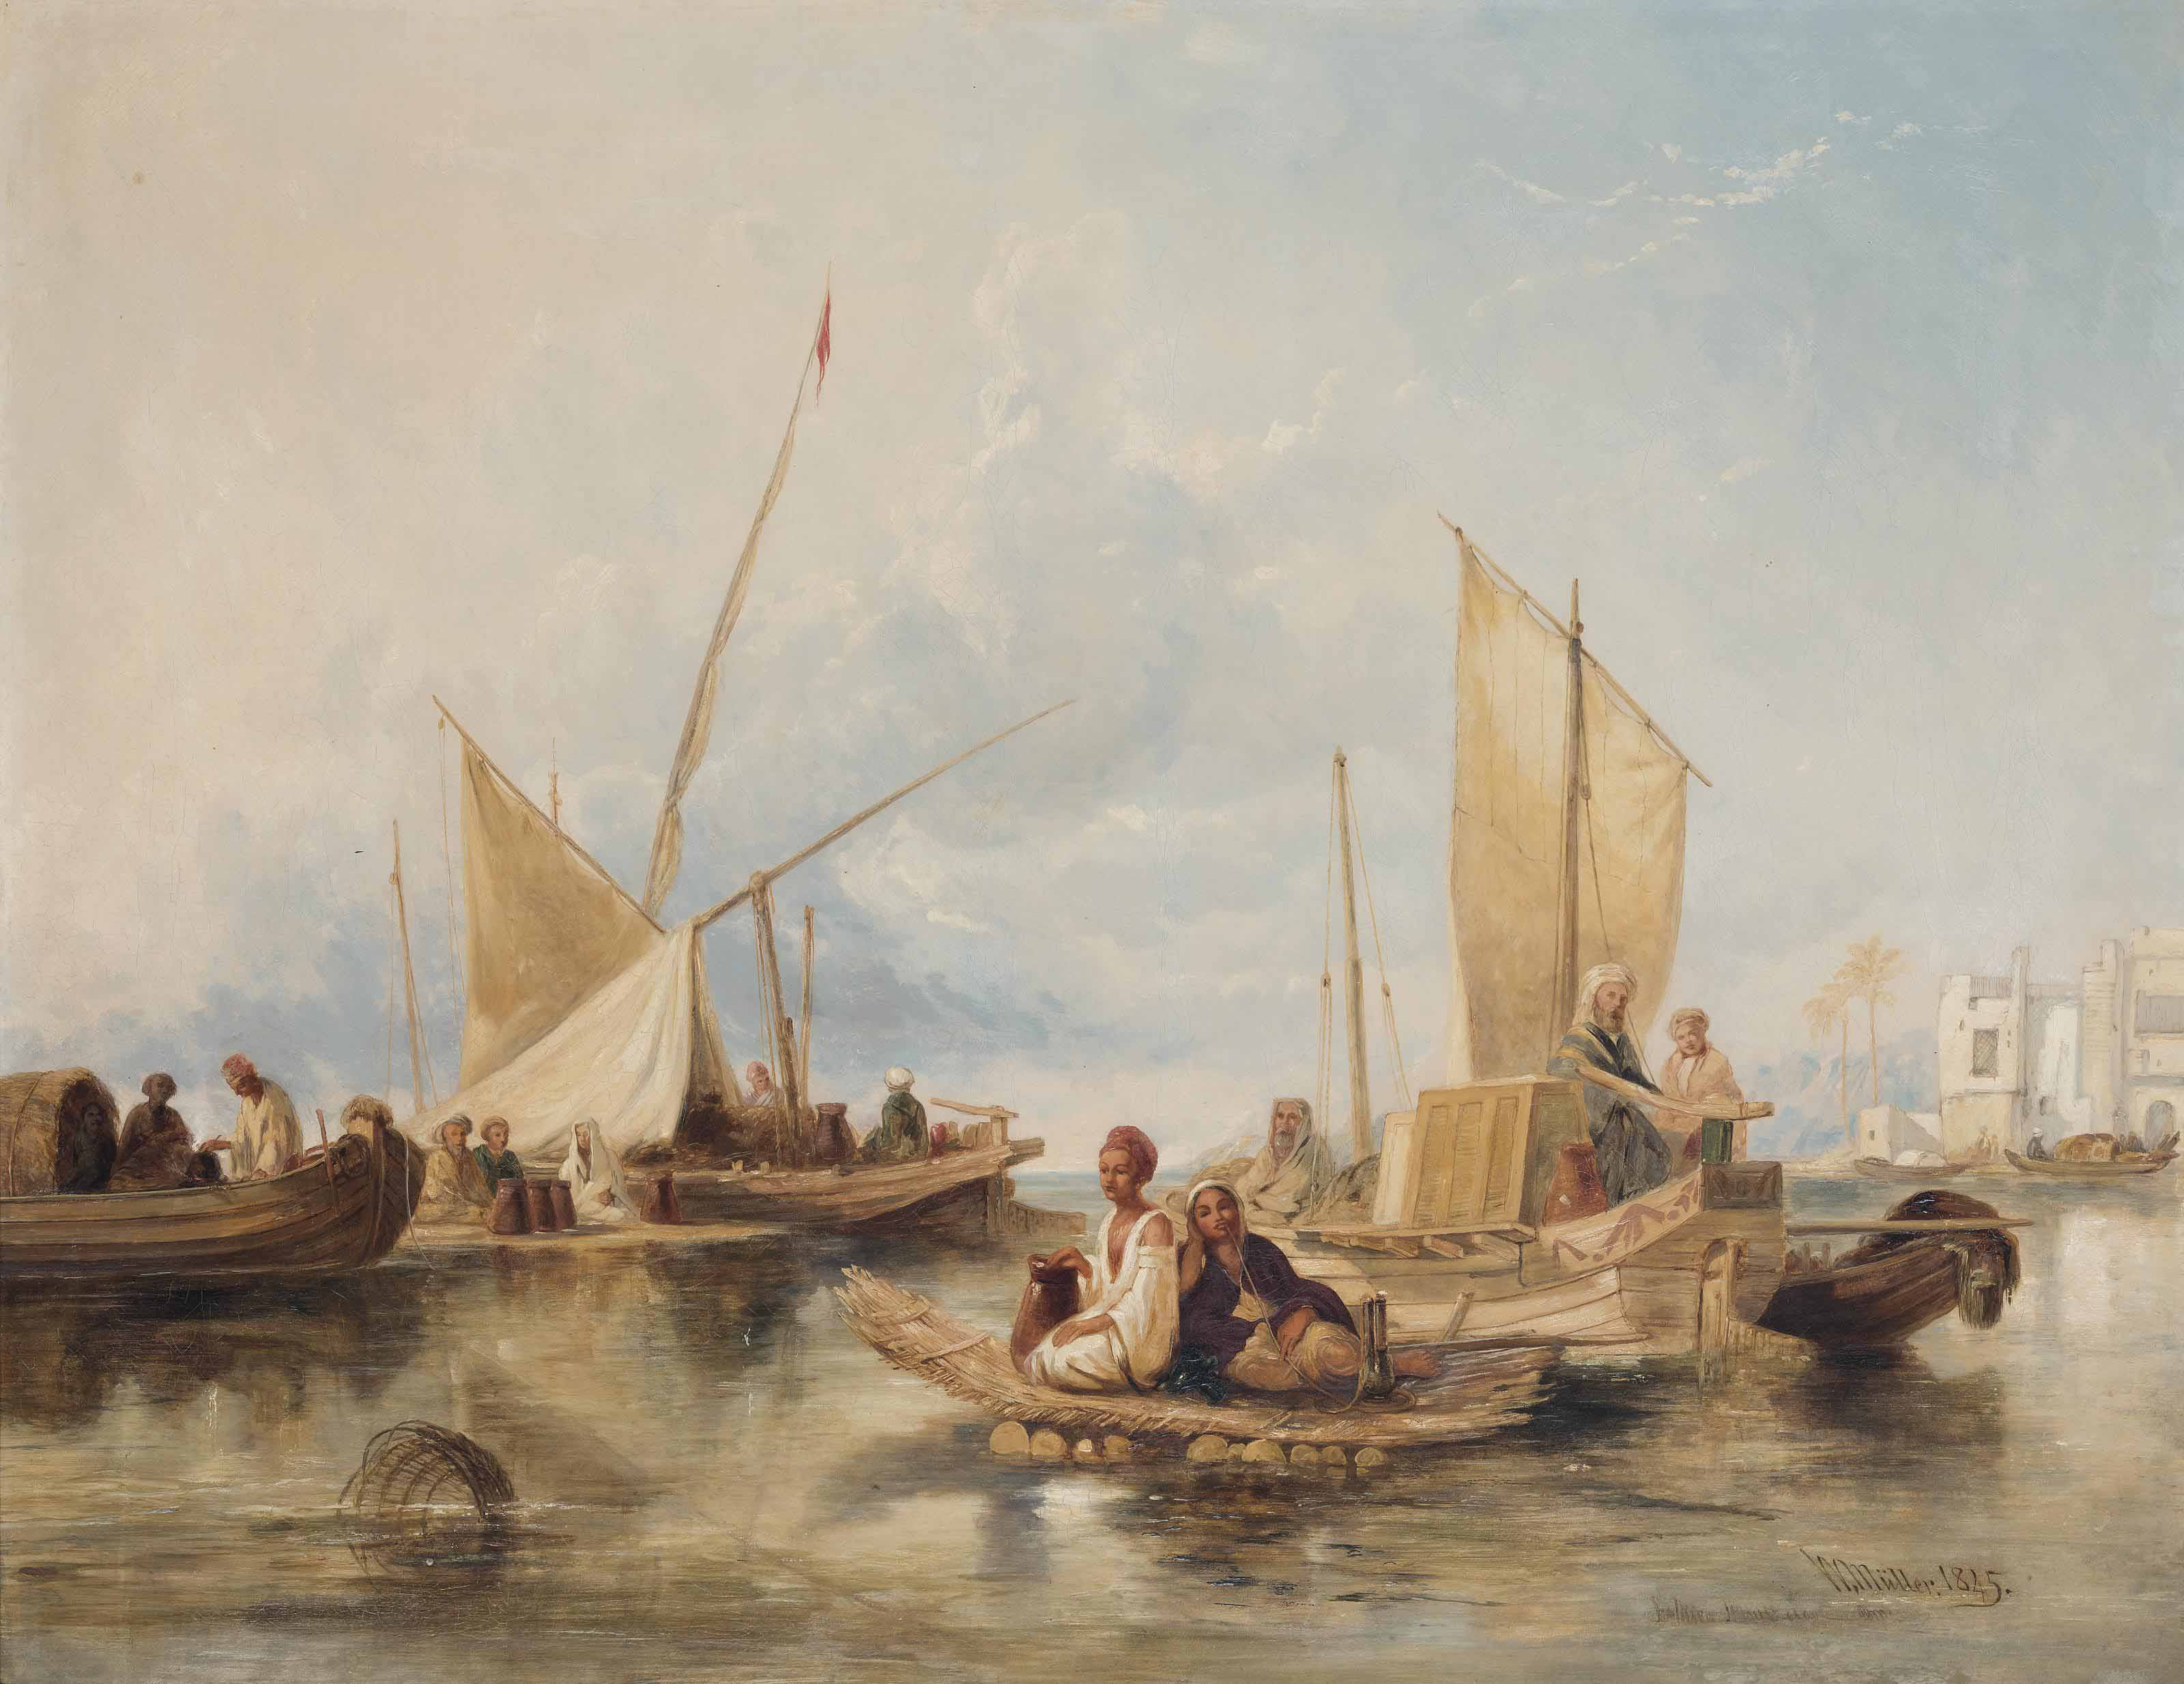 Figures on the Nile